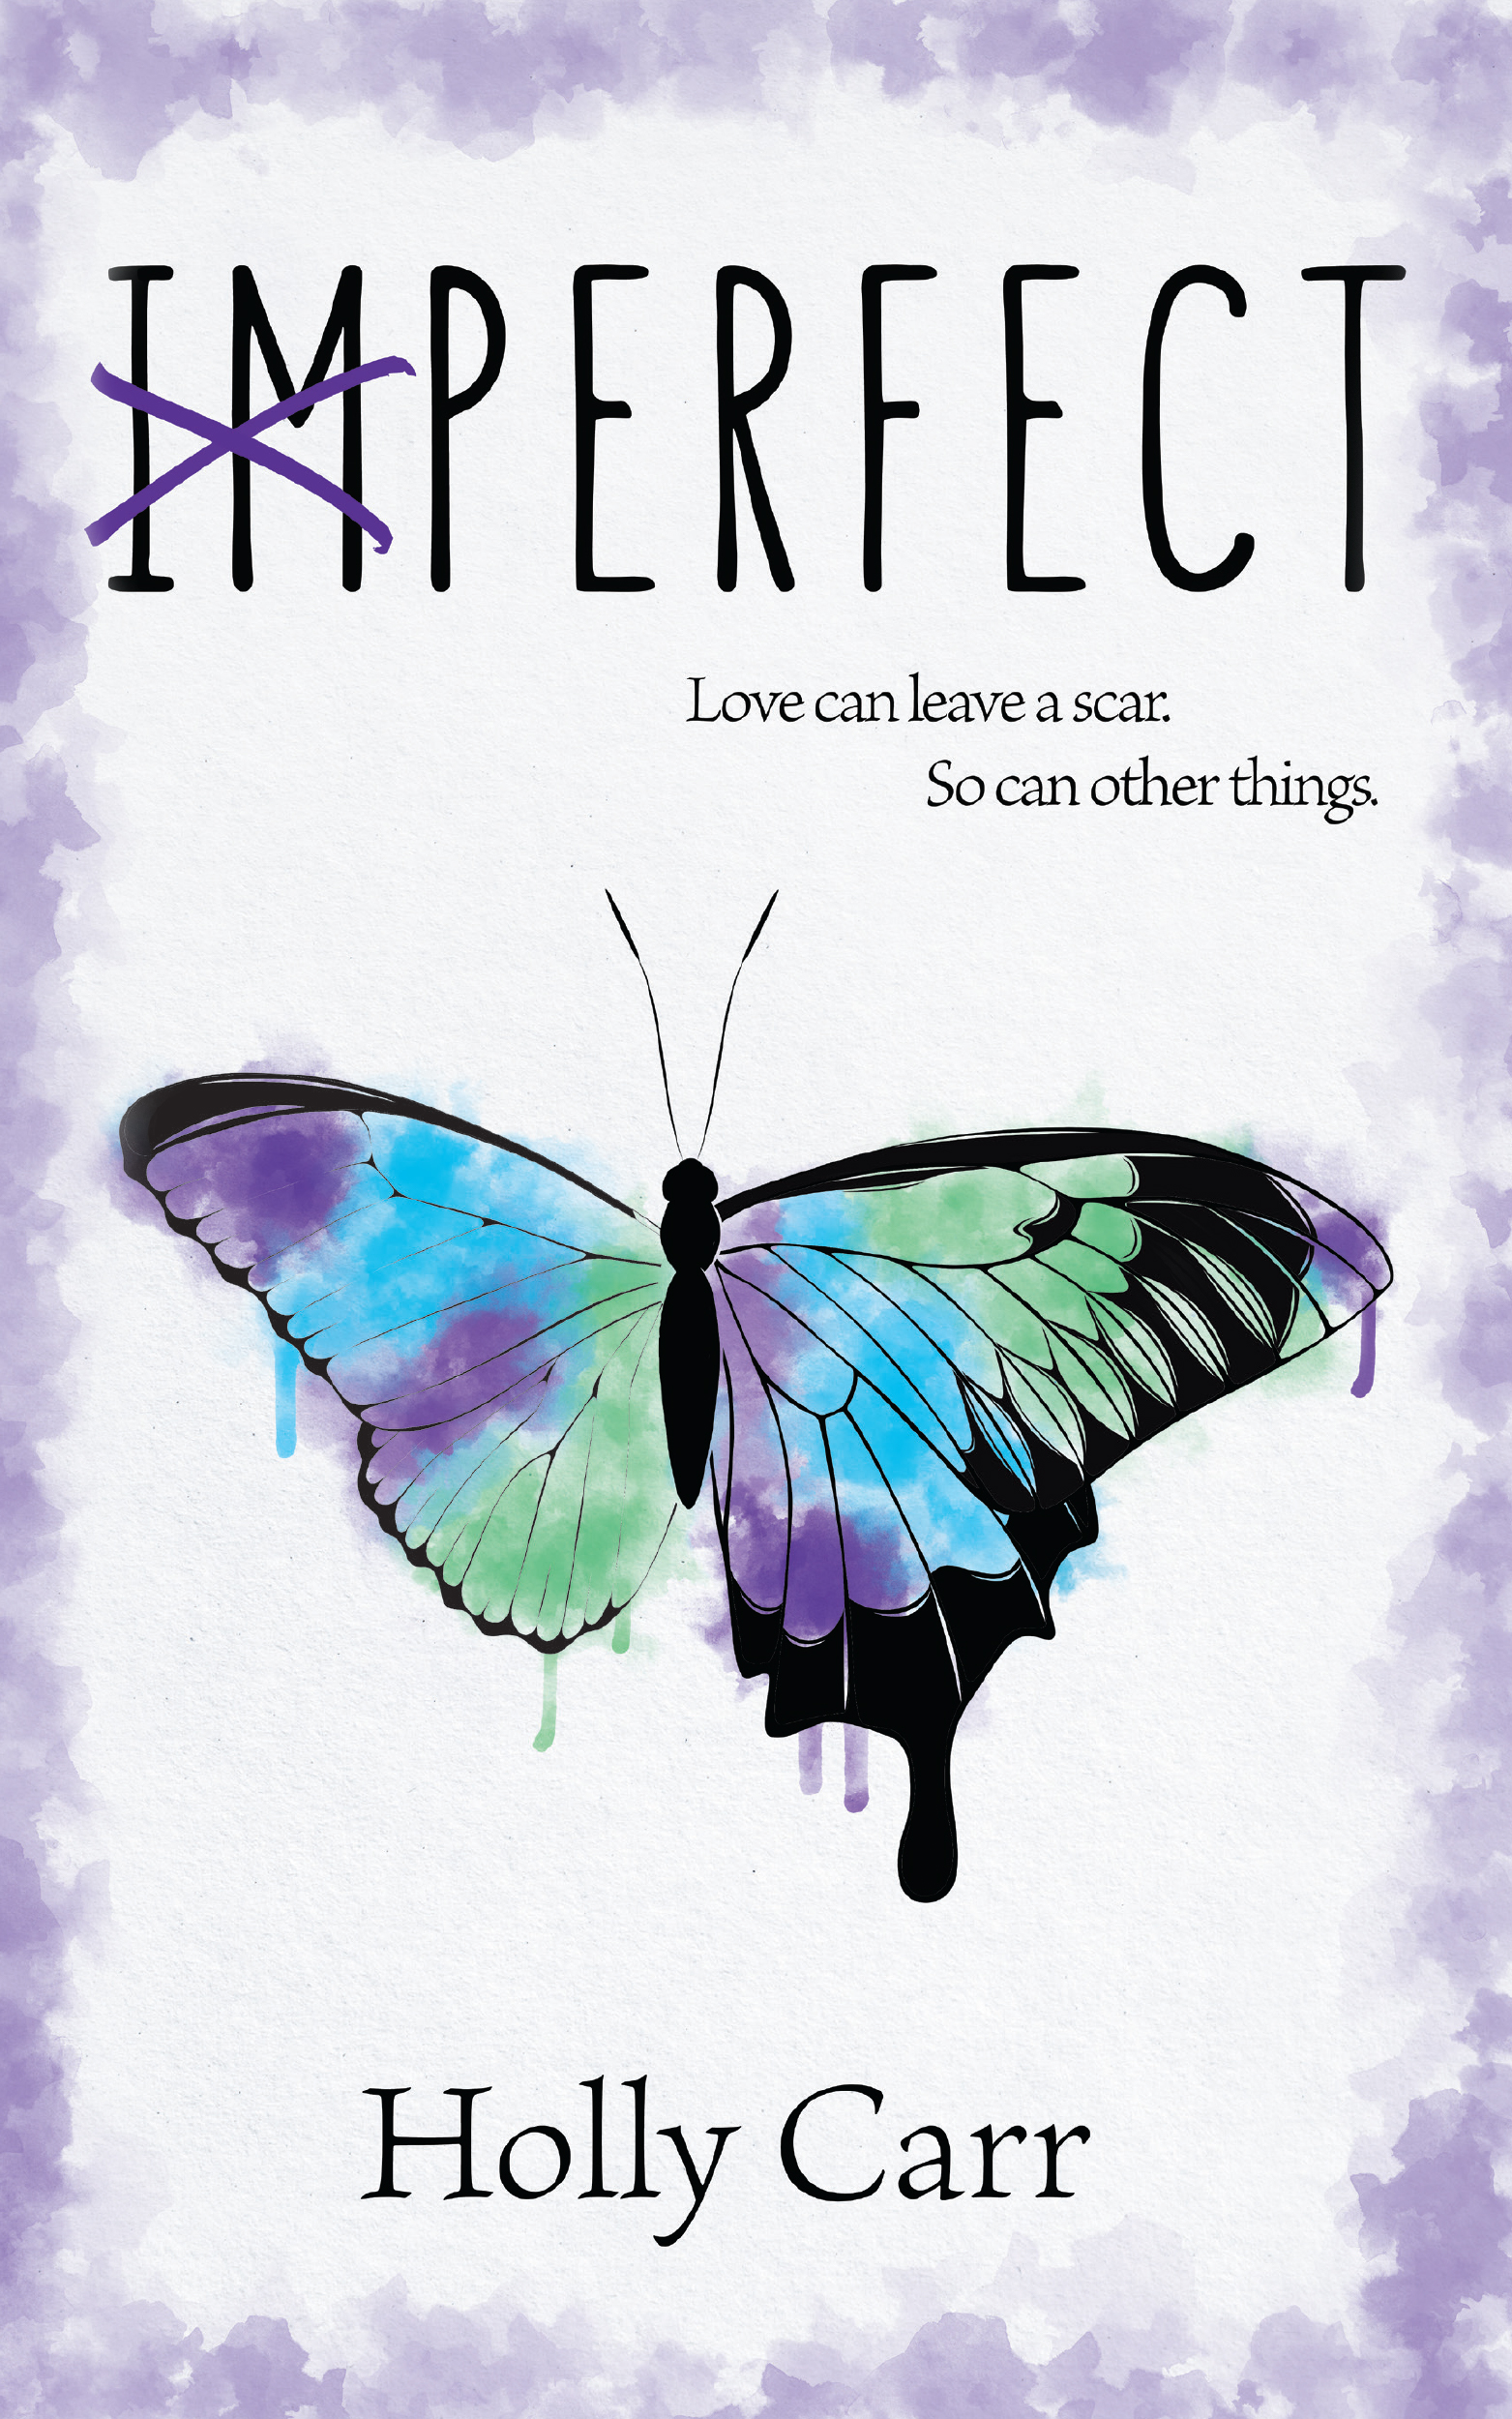 Imperfect: Love can leave a scar. So can other things